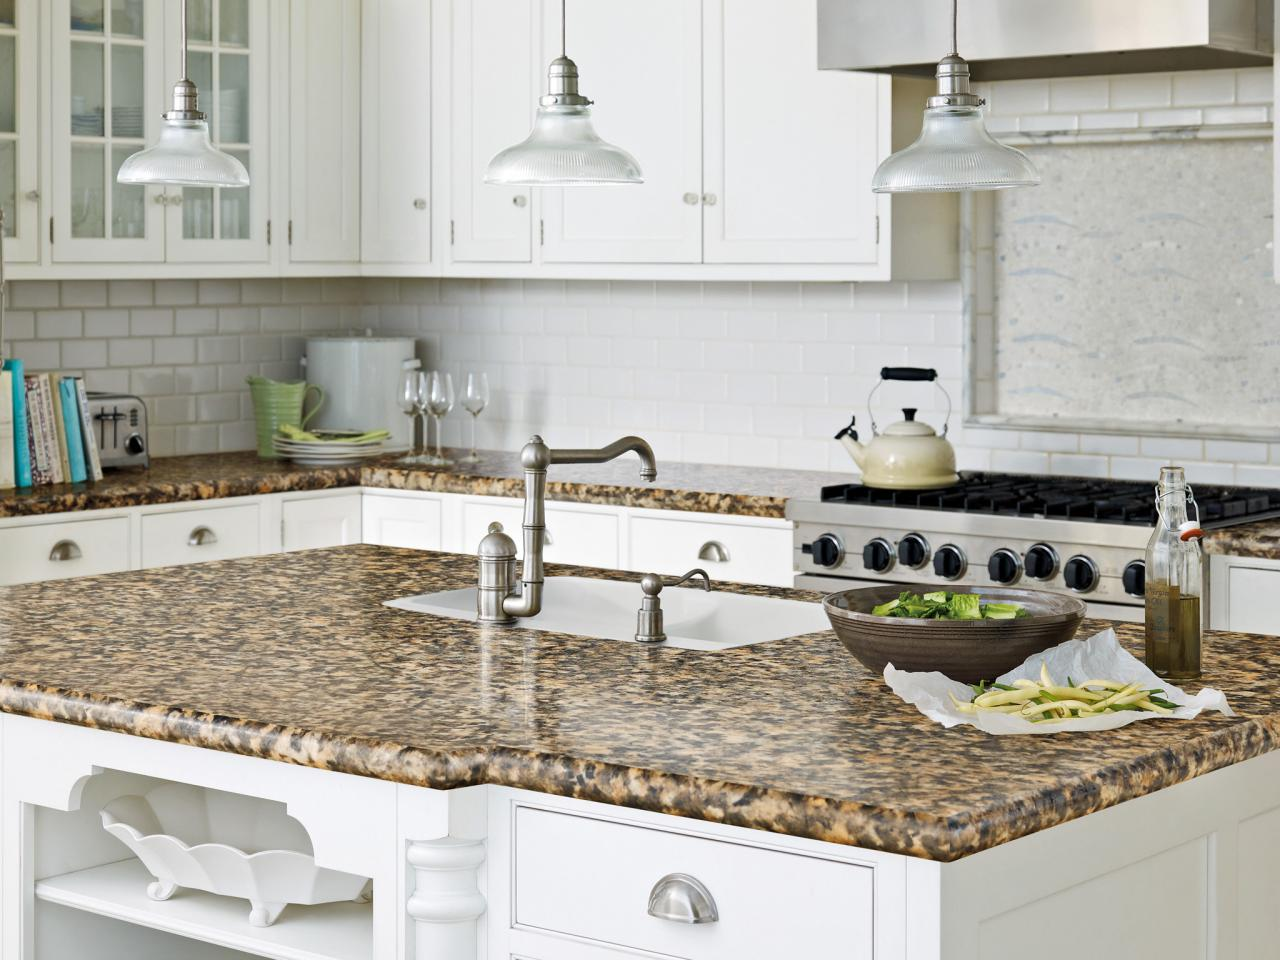 Kitchen Counter Ideas laminate kitchen countertops: pictures & ideas from hgtv | hgtv